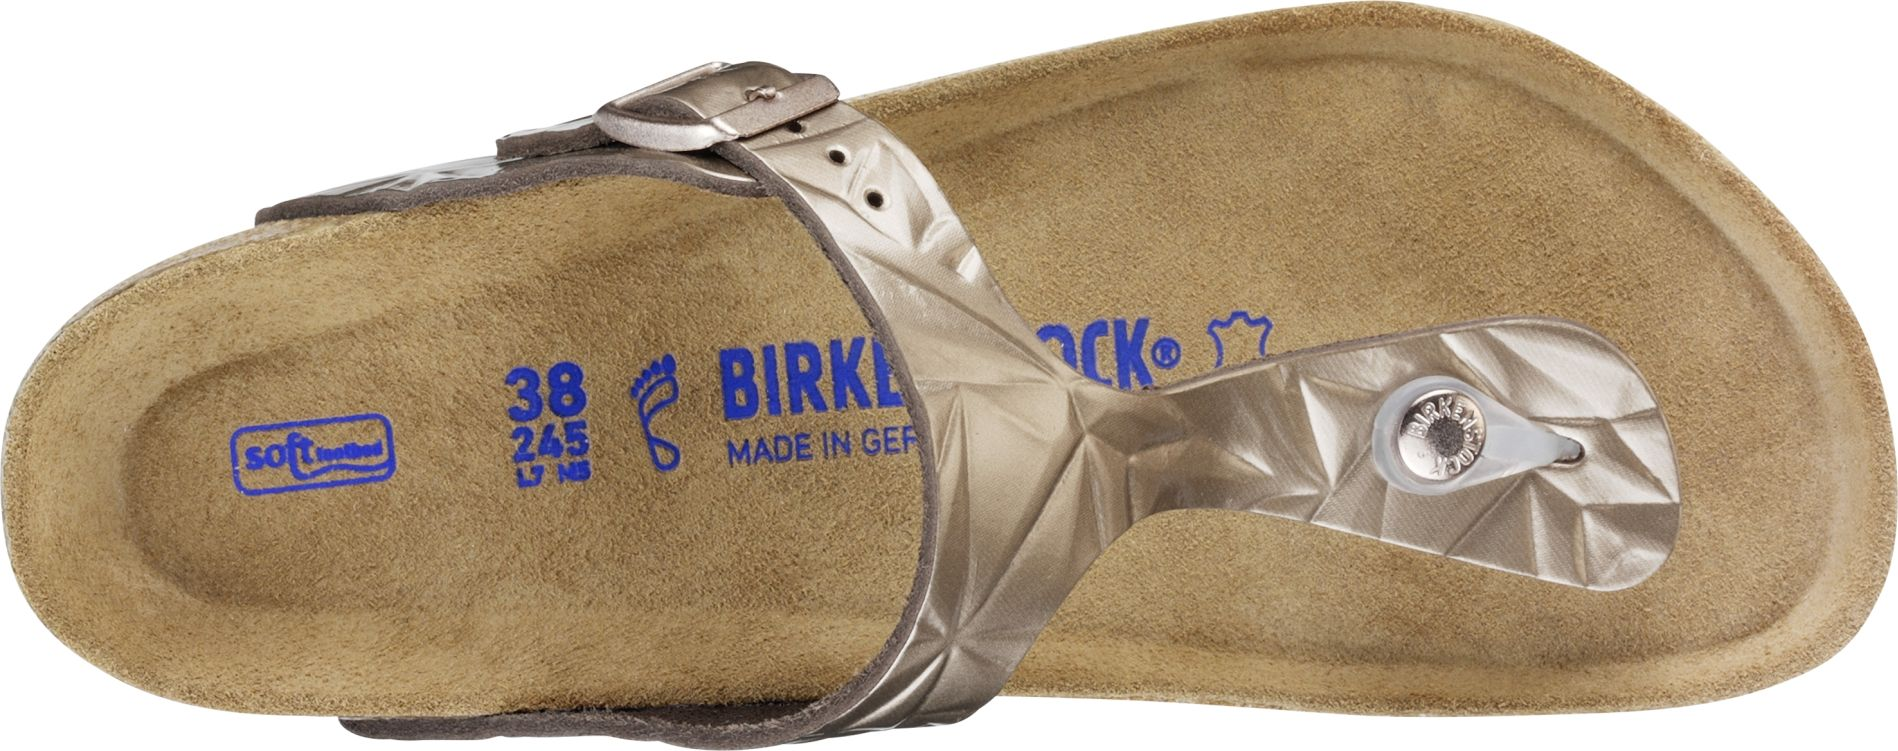 f06dfad903d ... Preview  Birkenstock Gizeh Spectral Copper Soft Footbed